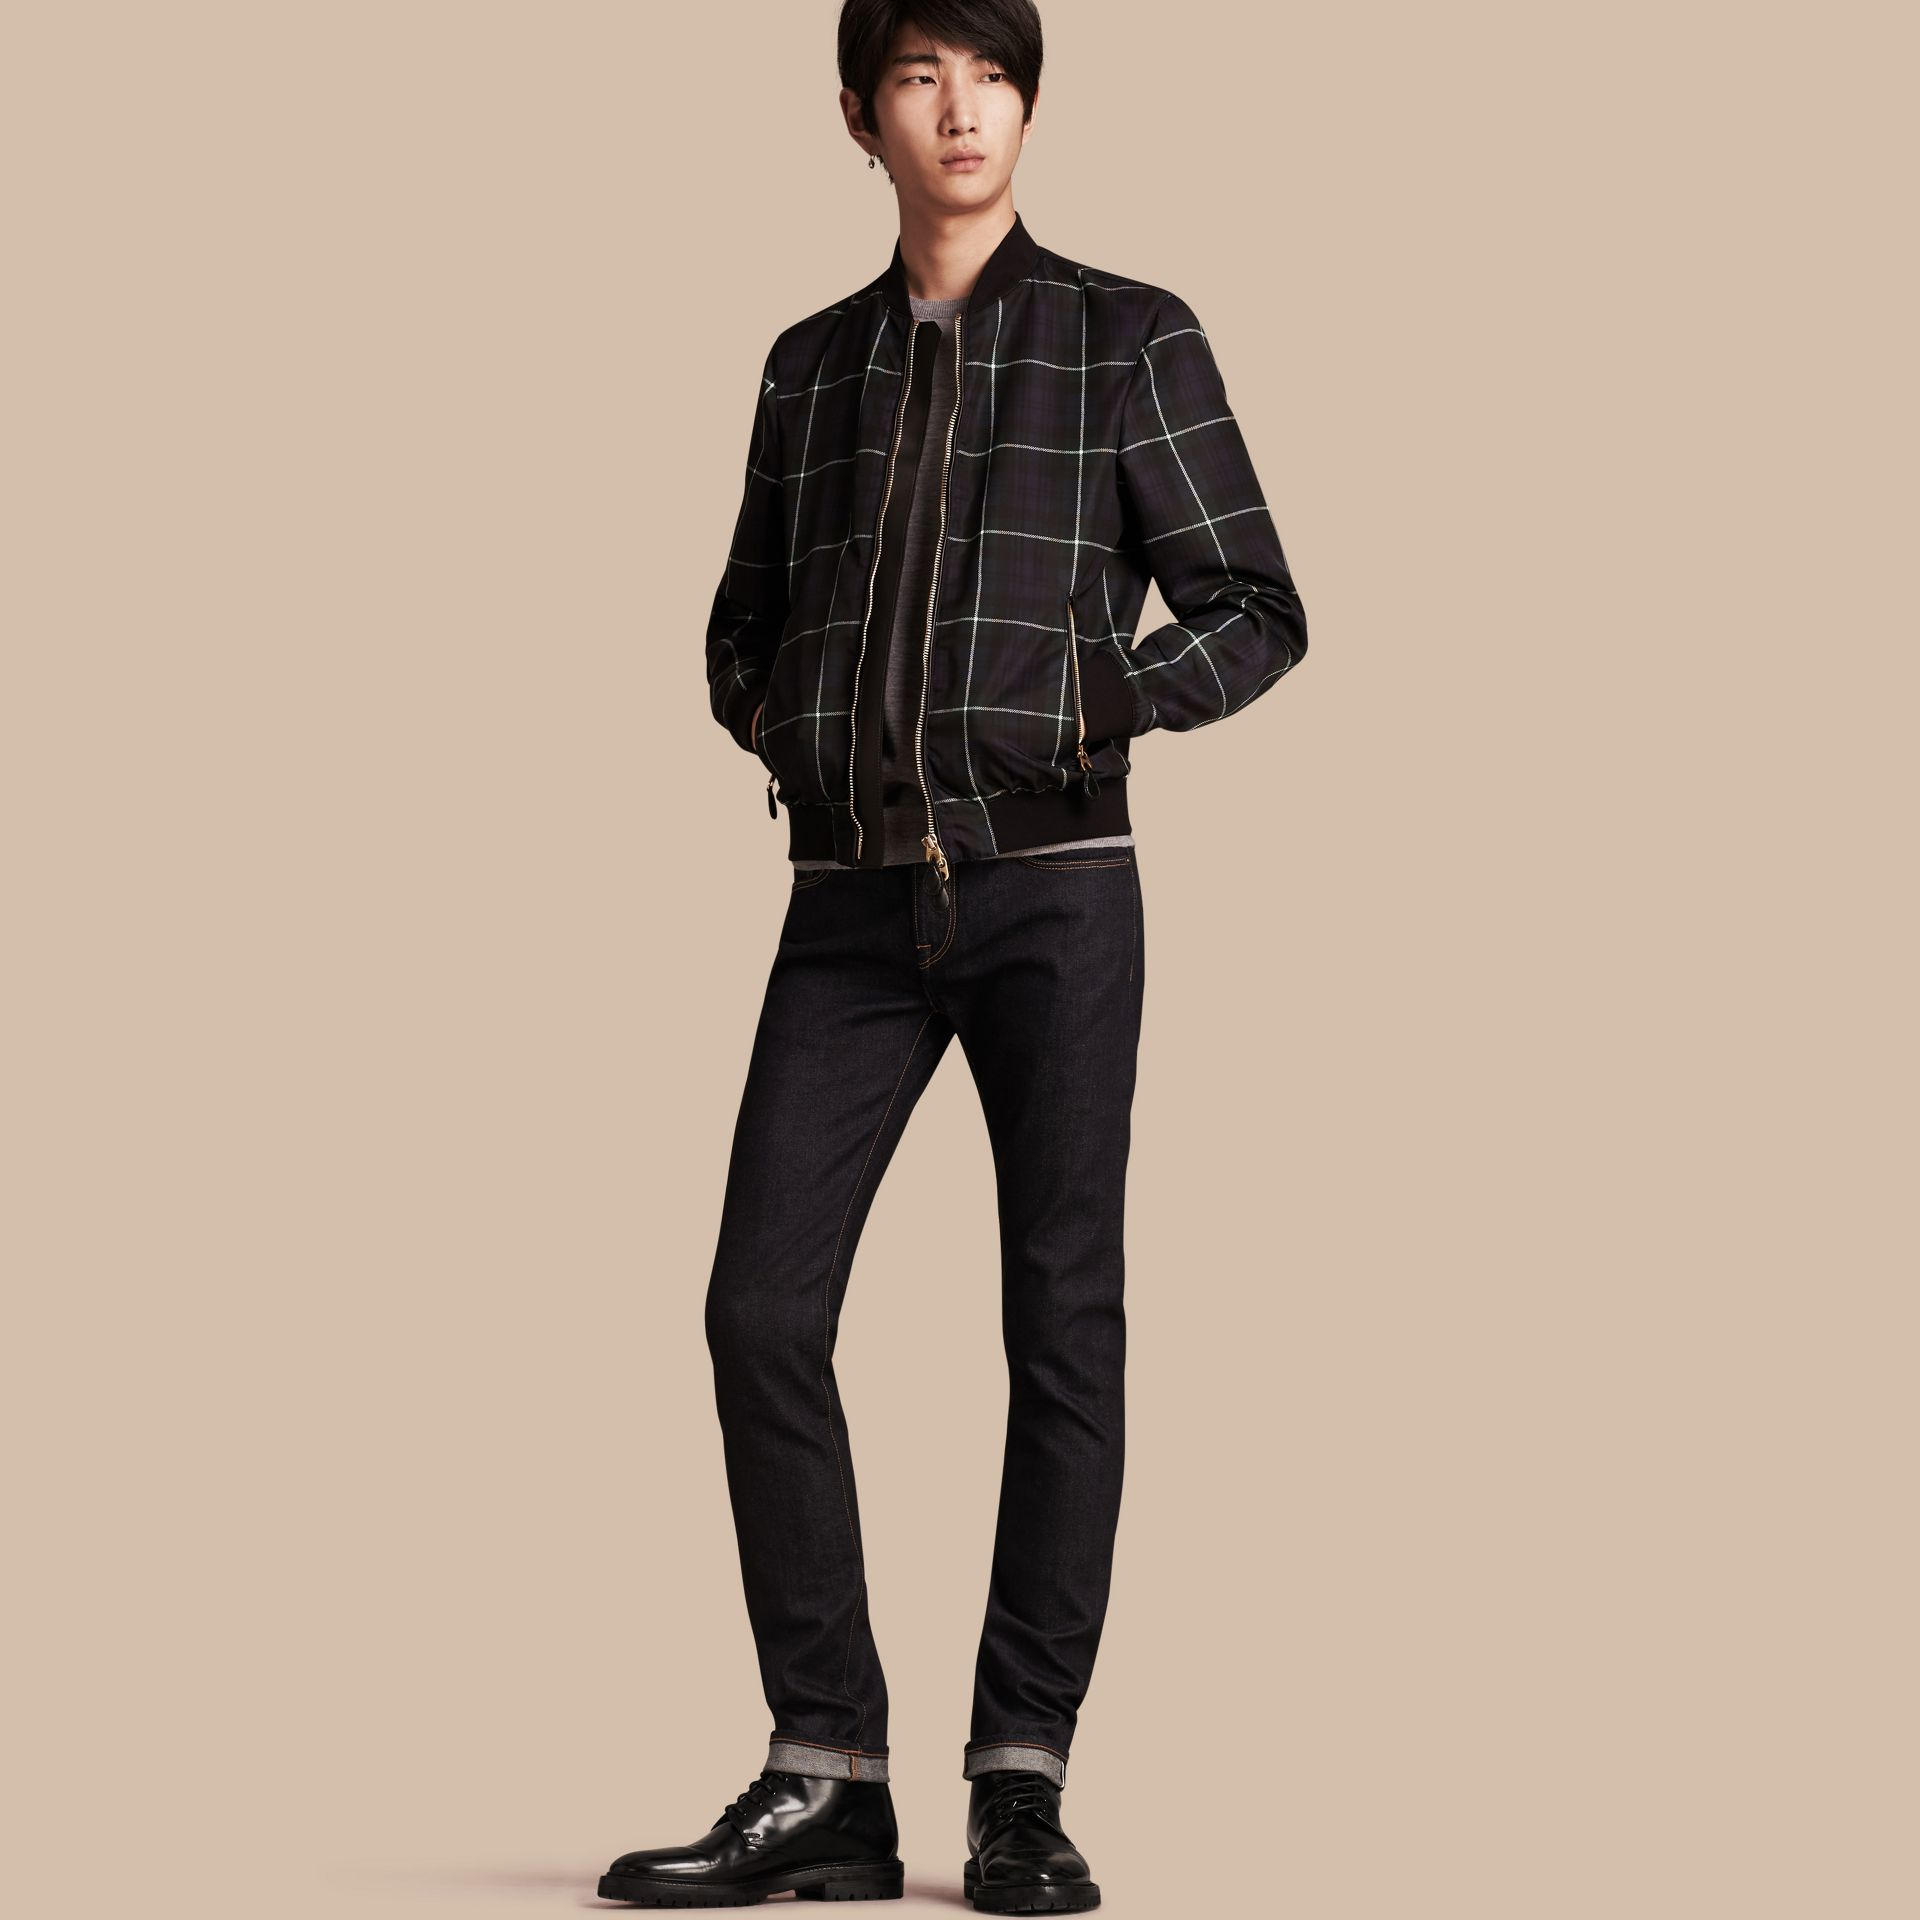 Indigo sombre Jean slim en denim selvedge japonais extensible - photo de la galerie 1